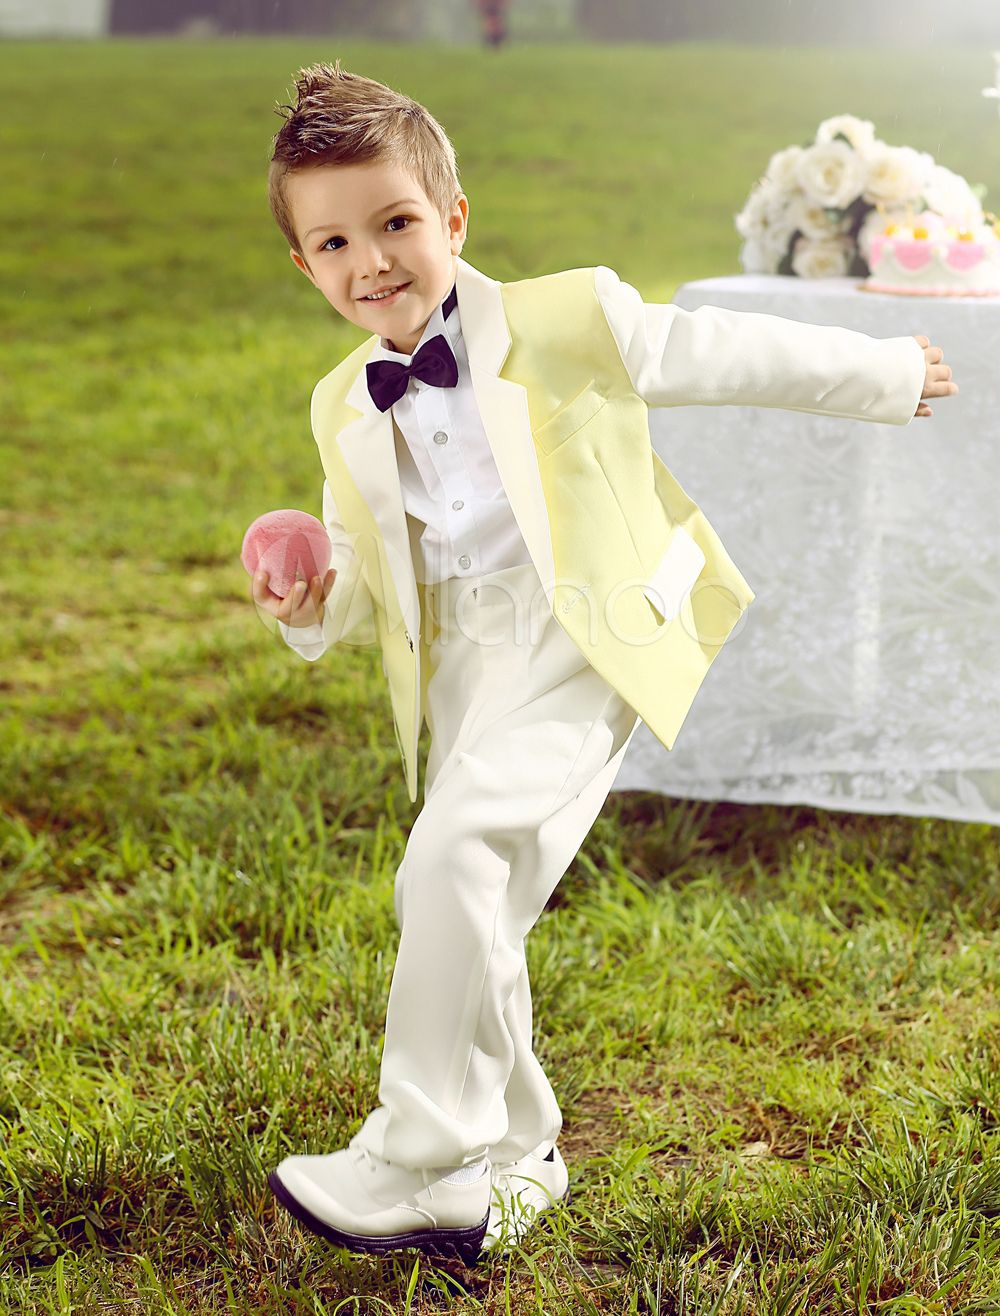 ad933f07e113 Baby Boy Suit Set Kids Wedding Tuxedo Yellow Jacket Pants Shirts Bow Tie 4  Pcs Ring Bearer Suits